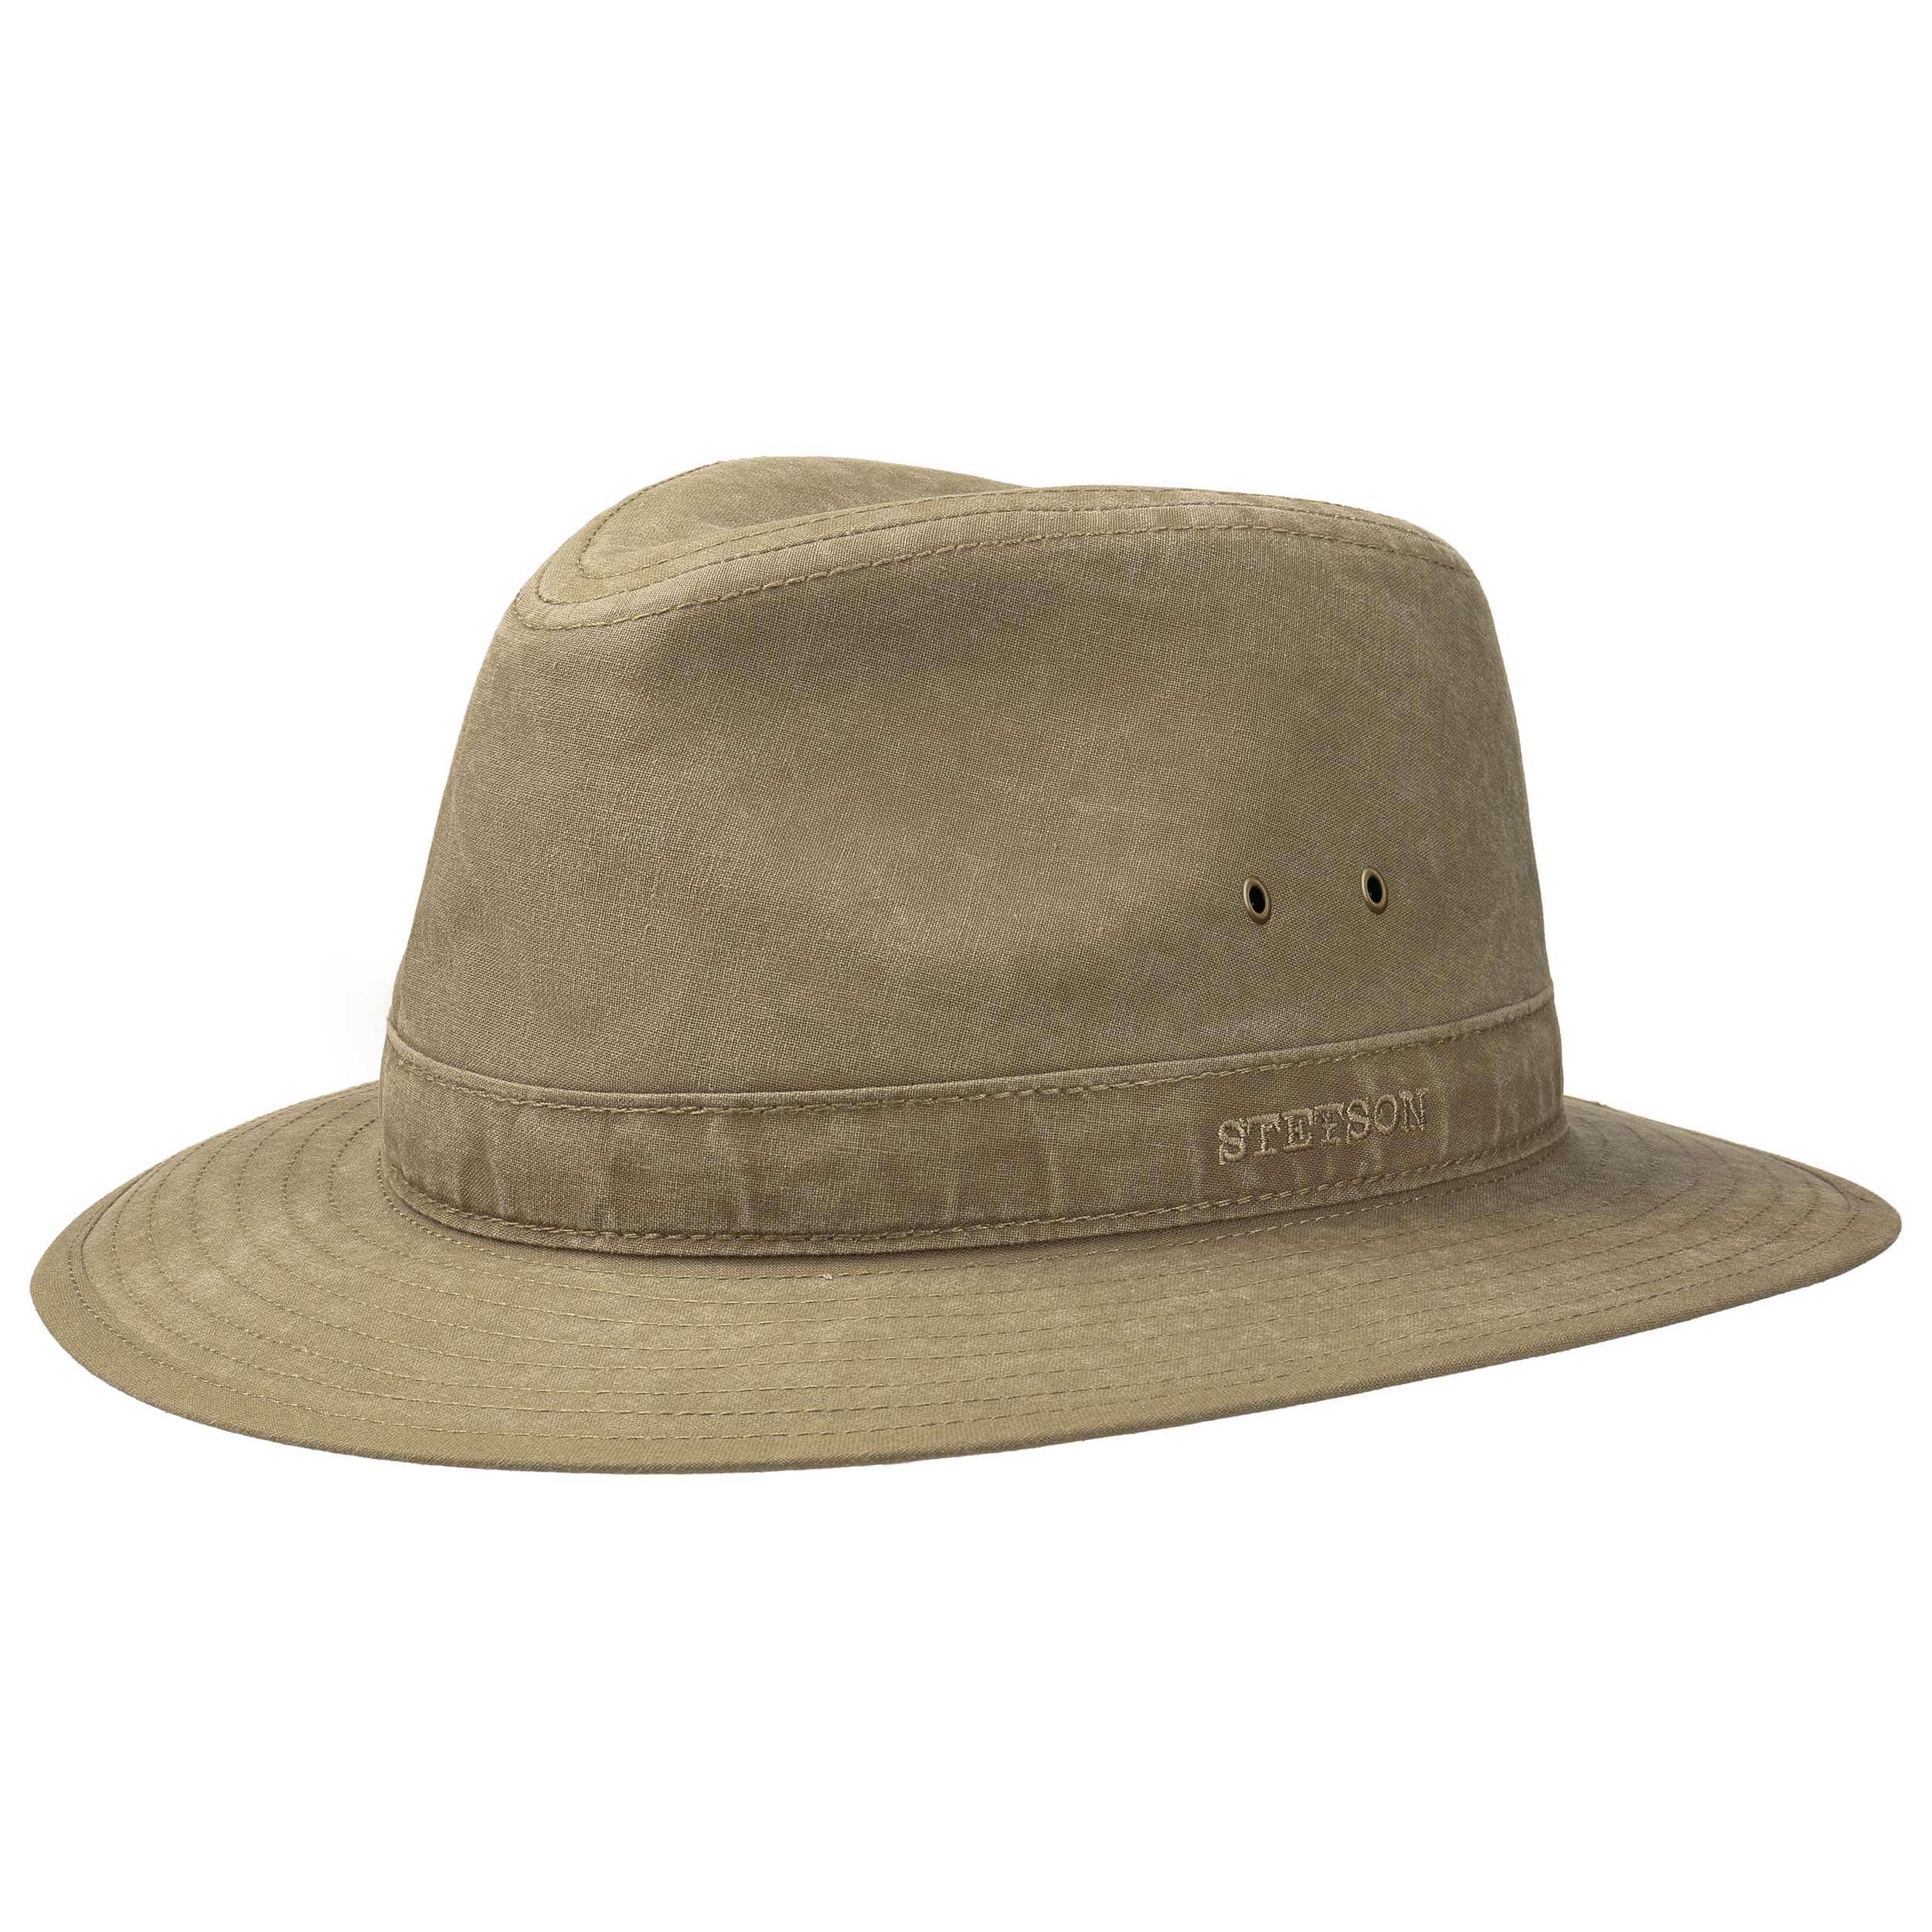 6dd02fe2389de8 ... Delave Organic Cotton Traveller Hat by Stetson - khaki 4 ...